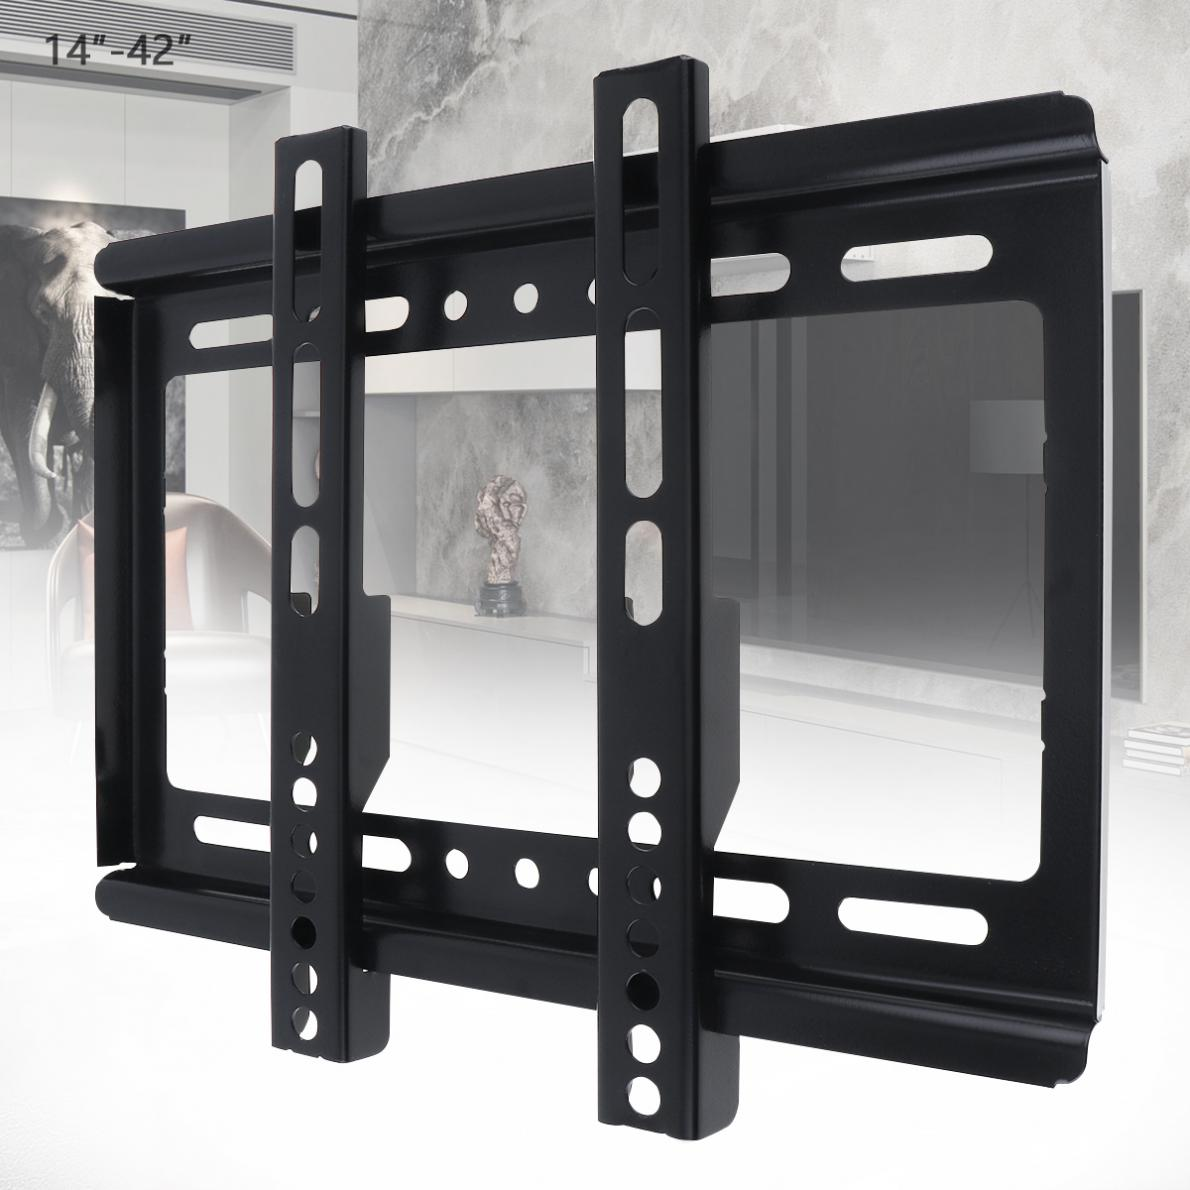 Us 8 2 25 Off Universal 25kg Tv Wall Mount Bracket Flat Panel Tv Frame Mounts With Gradienter For 14 42 Inch Lcd Led Monitor Flat Panel In Tv Mount